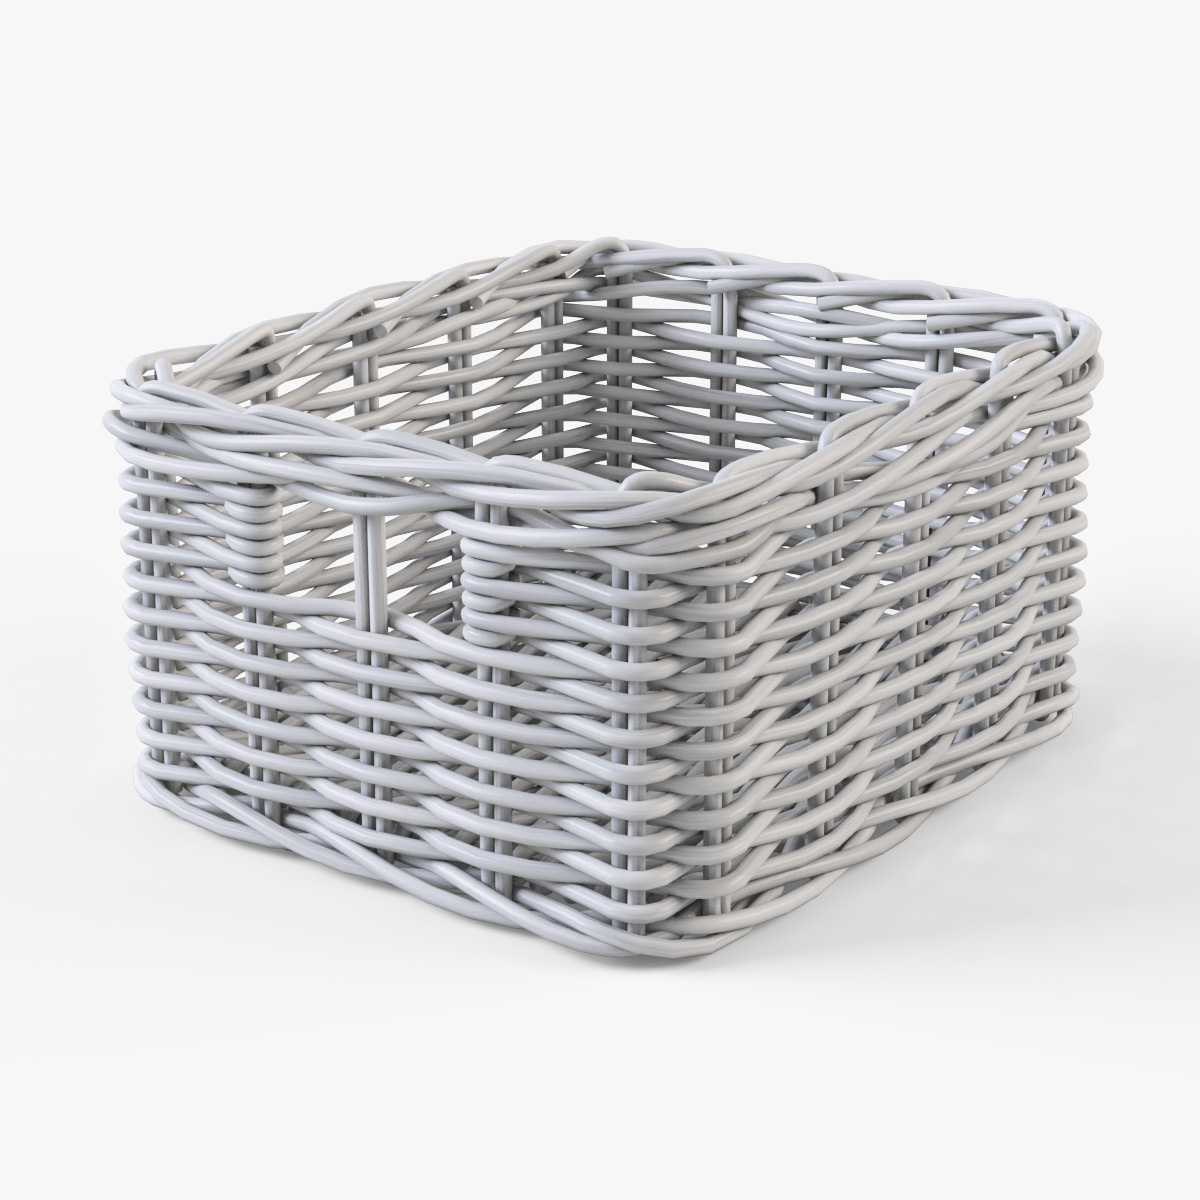 wicker basket ikea byholma 1 set 4 color 3d model. Black Bedroom Furniture Sets. Home Design Ideas